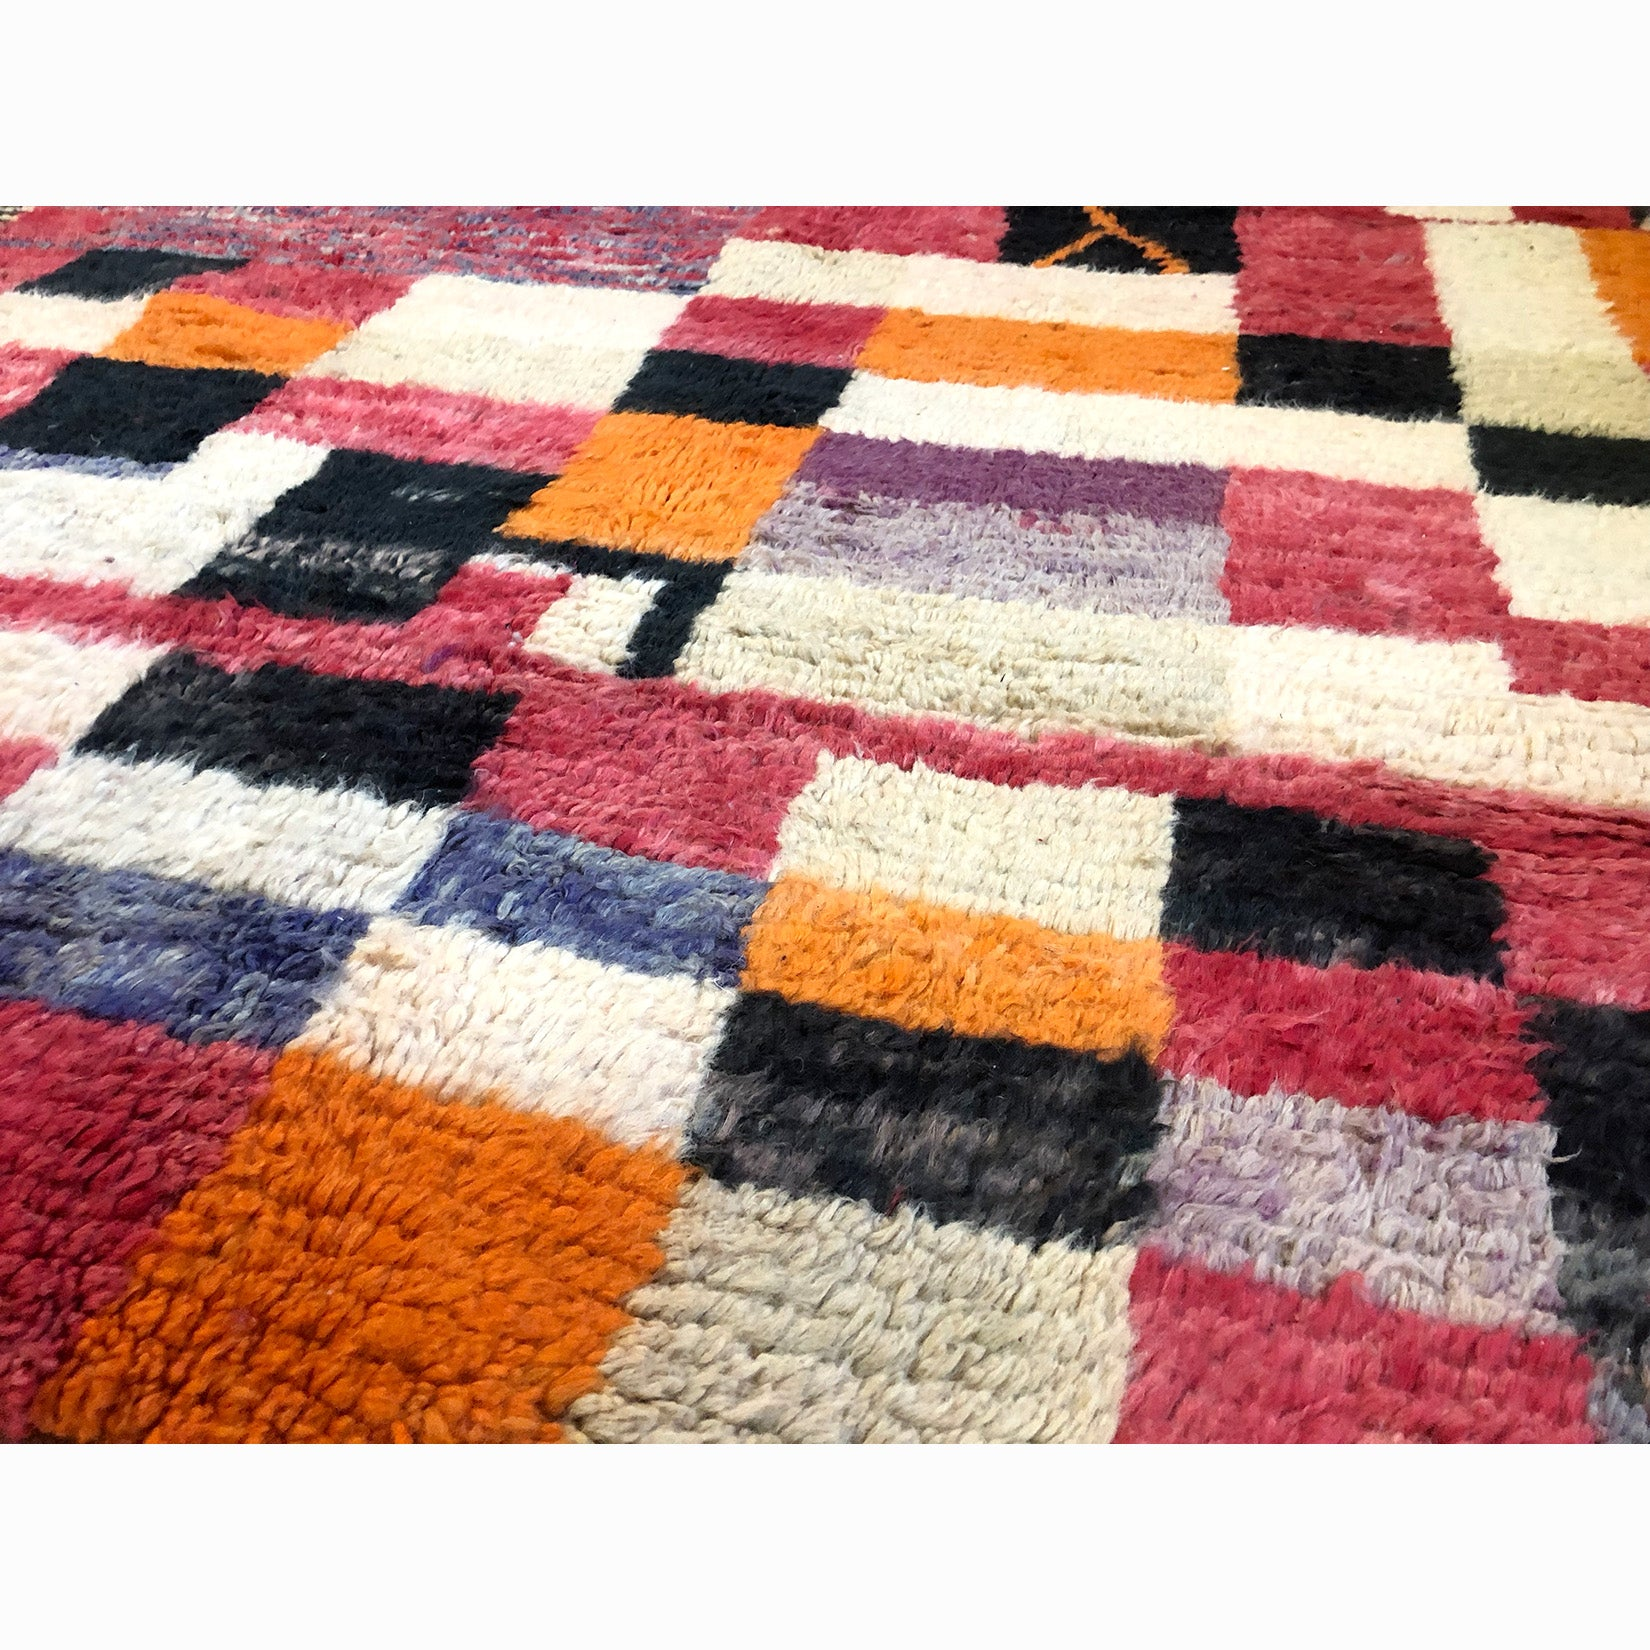 Colorful authentic art deco berber carpet - Kantara | Moroccan Rugs